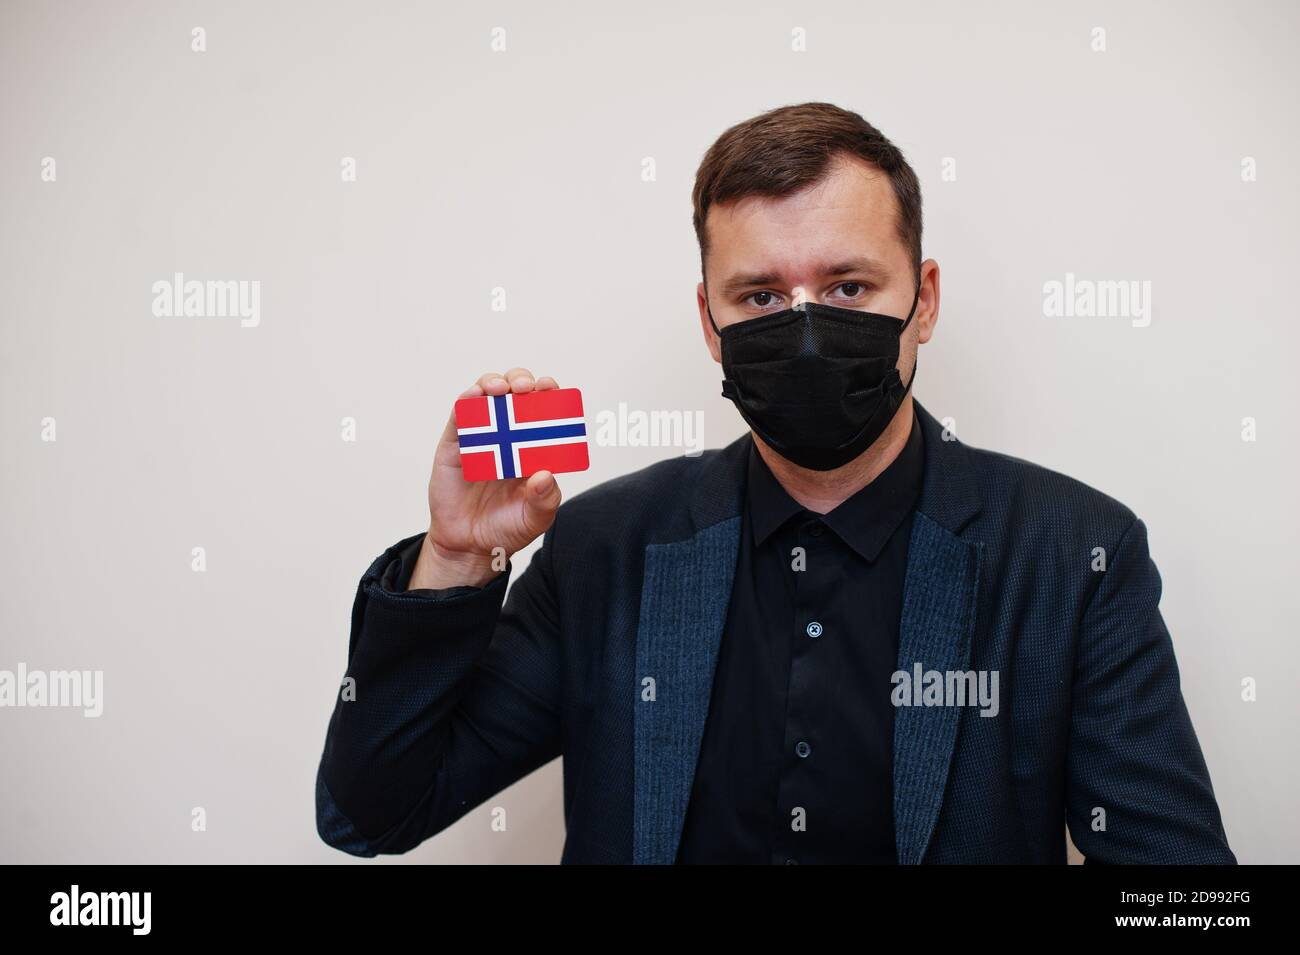 European man wear black formal and protect face mask, hold Norway flag card isolated on white background. Europe coronavirus Covid country concept. Stock Photo